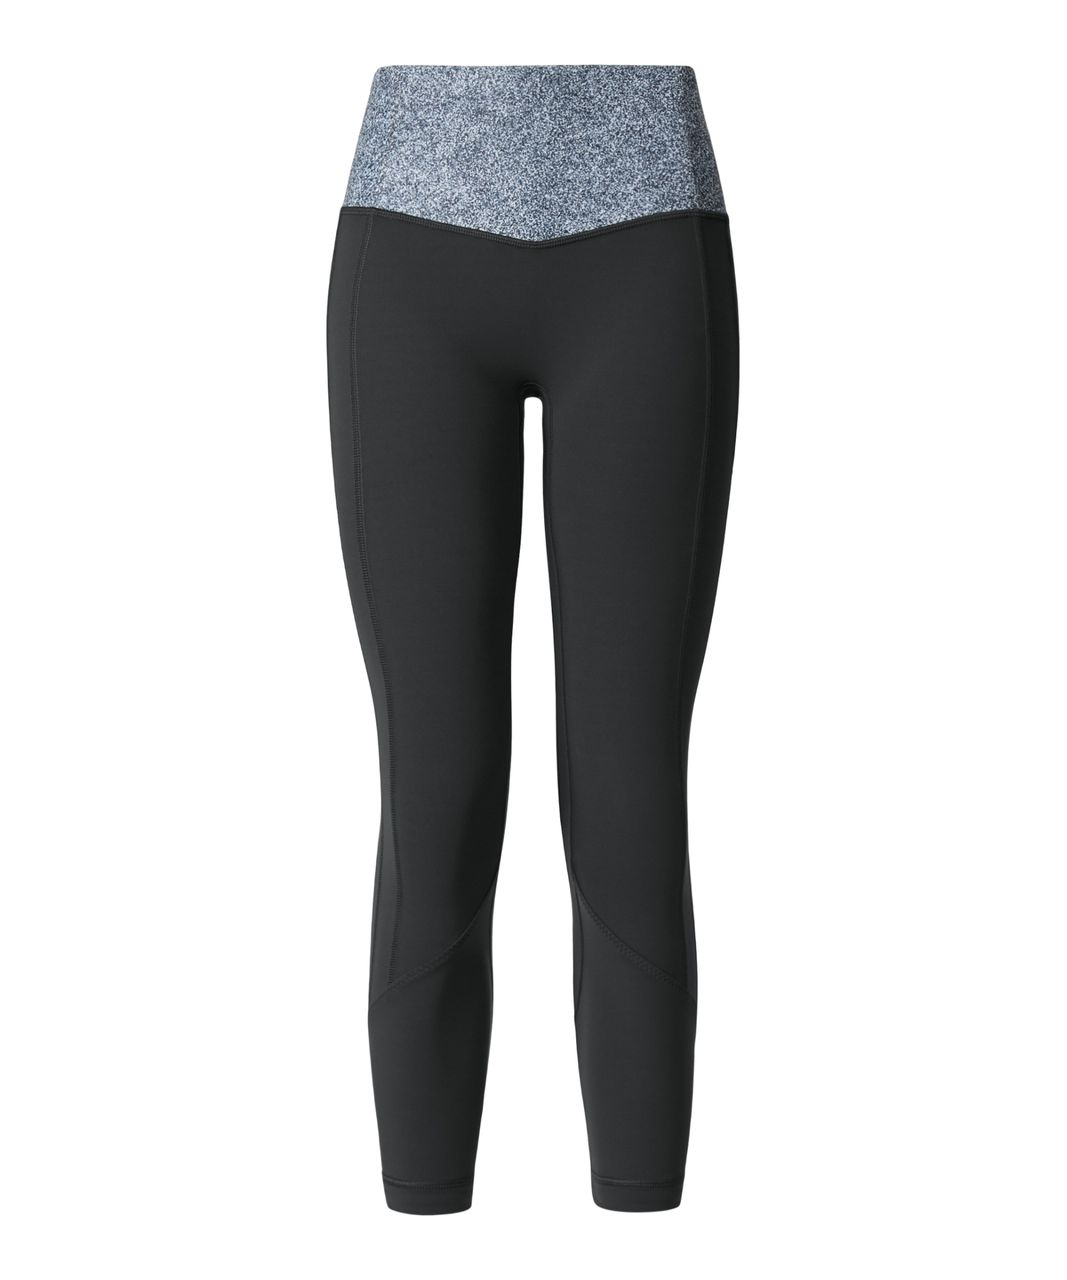 Lululemon All The Right Places Crop II - Deep Coal / Rio Mist White Black